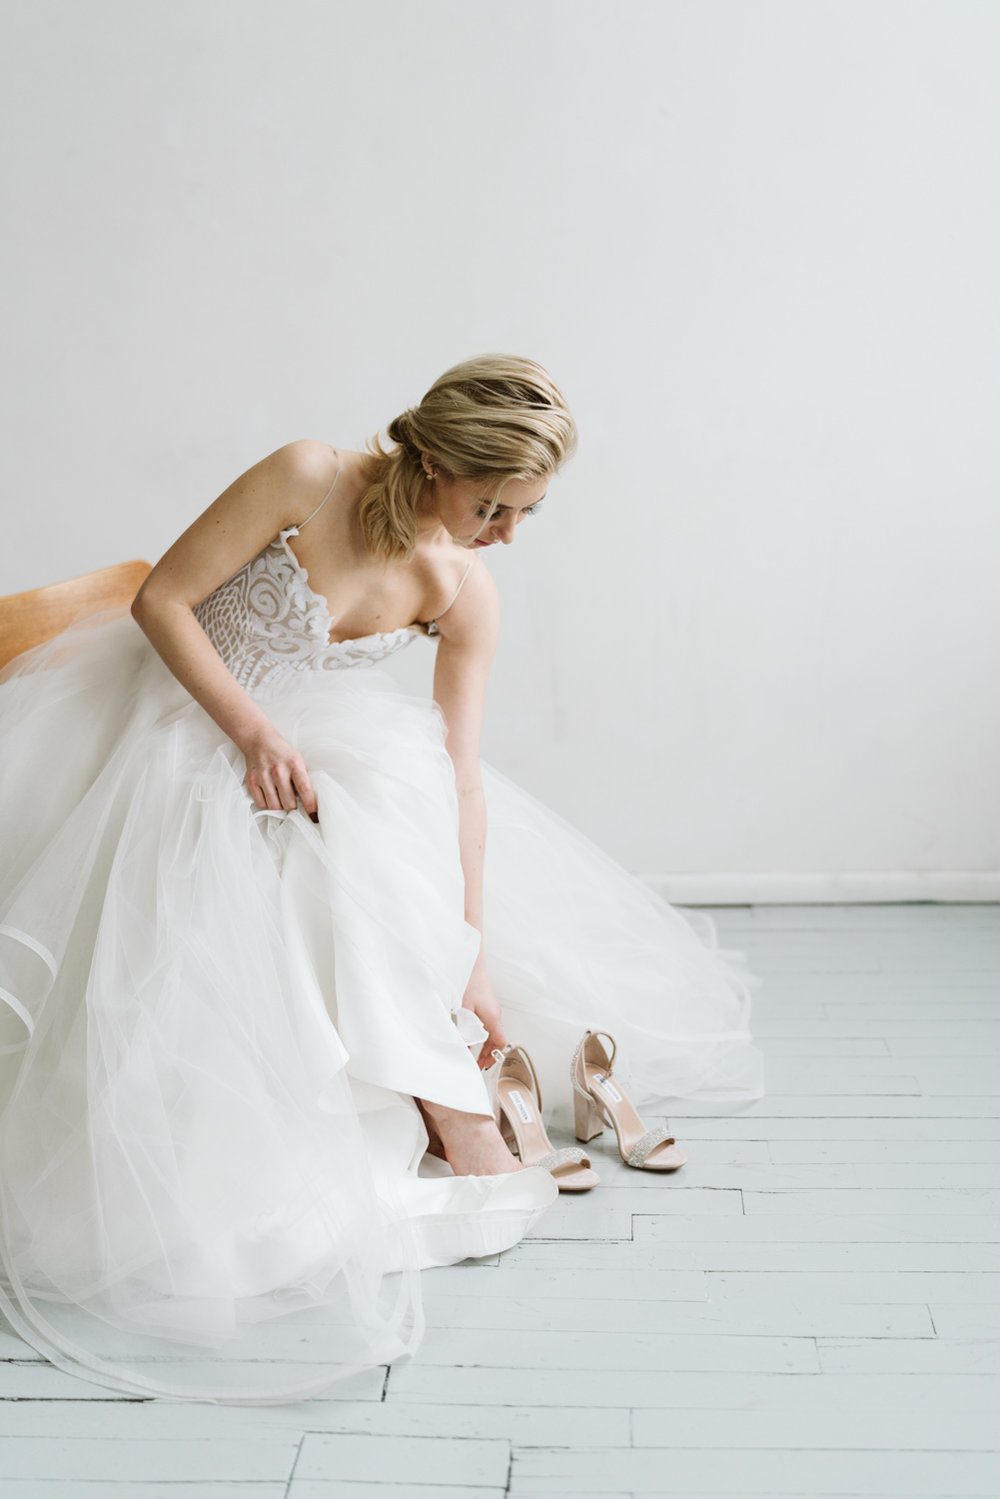 April Yentas Photography - January Styled Shoot-99.jpg